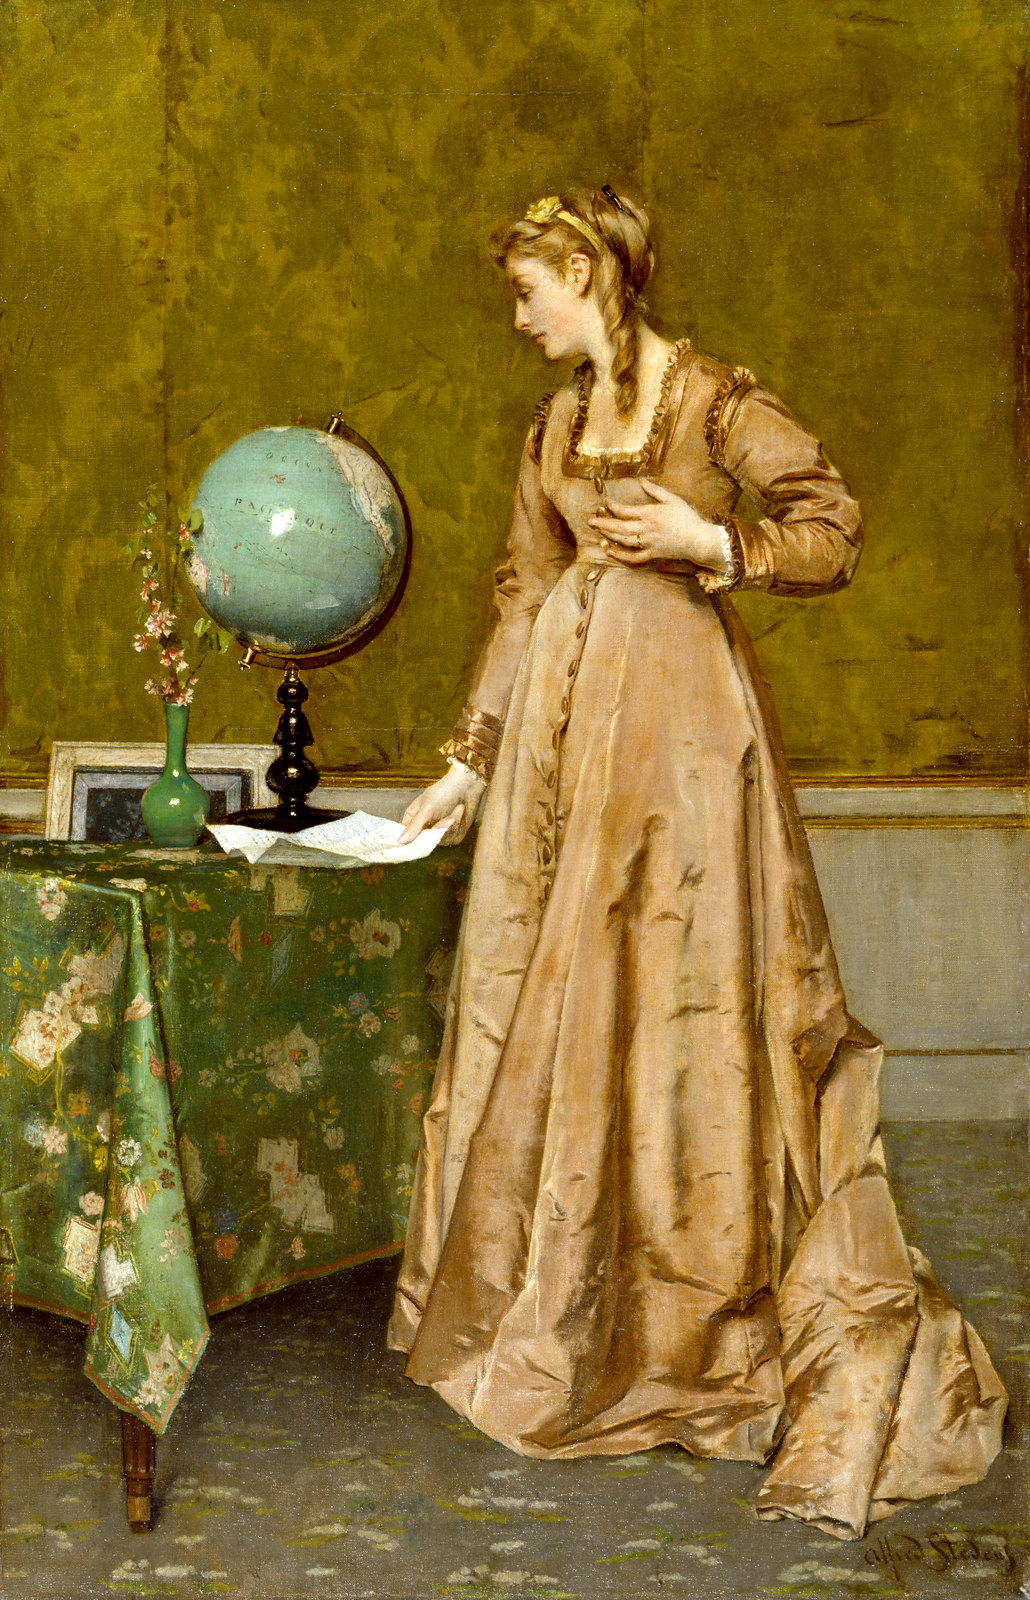 News from Afar by Alfred Stevens, 1865